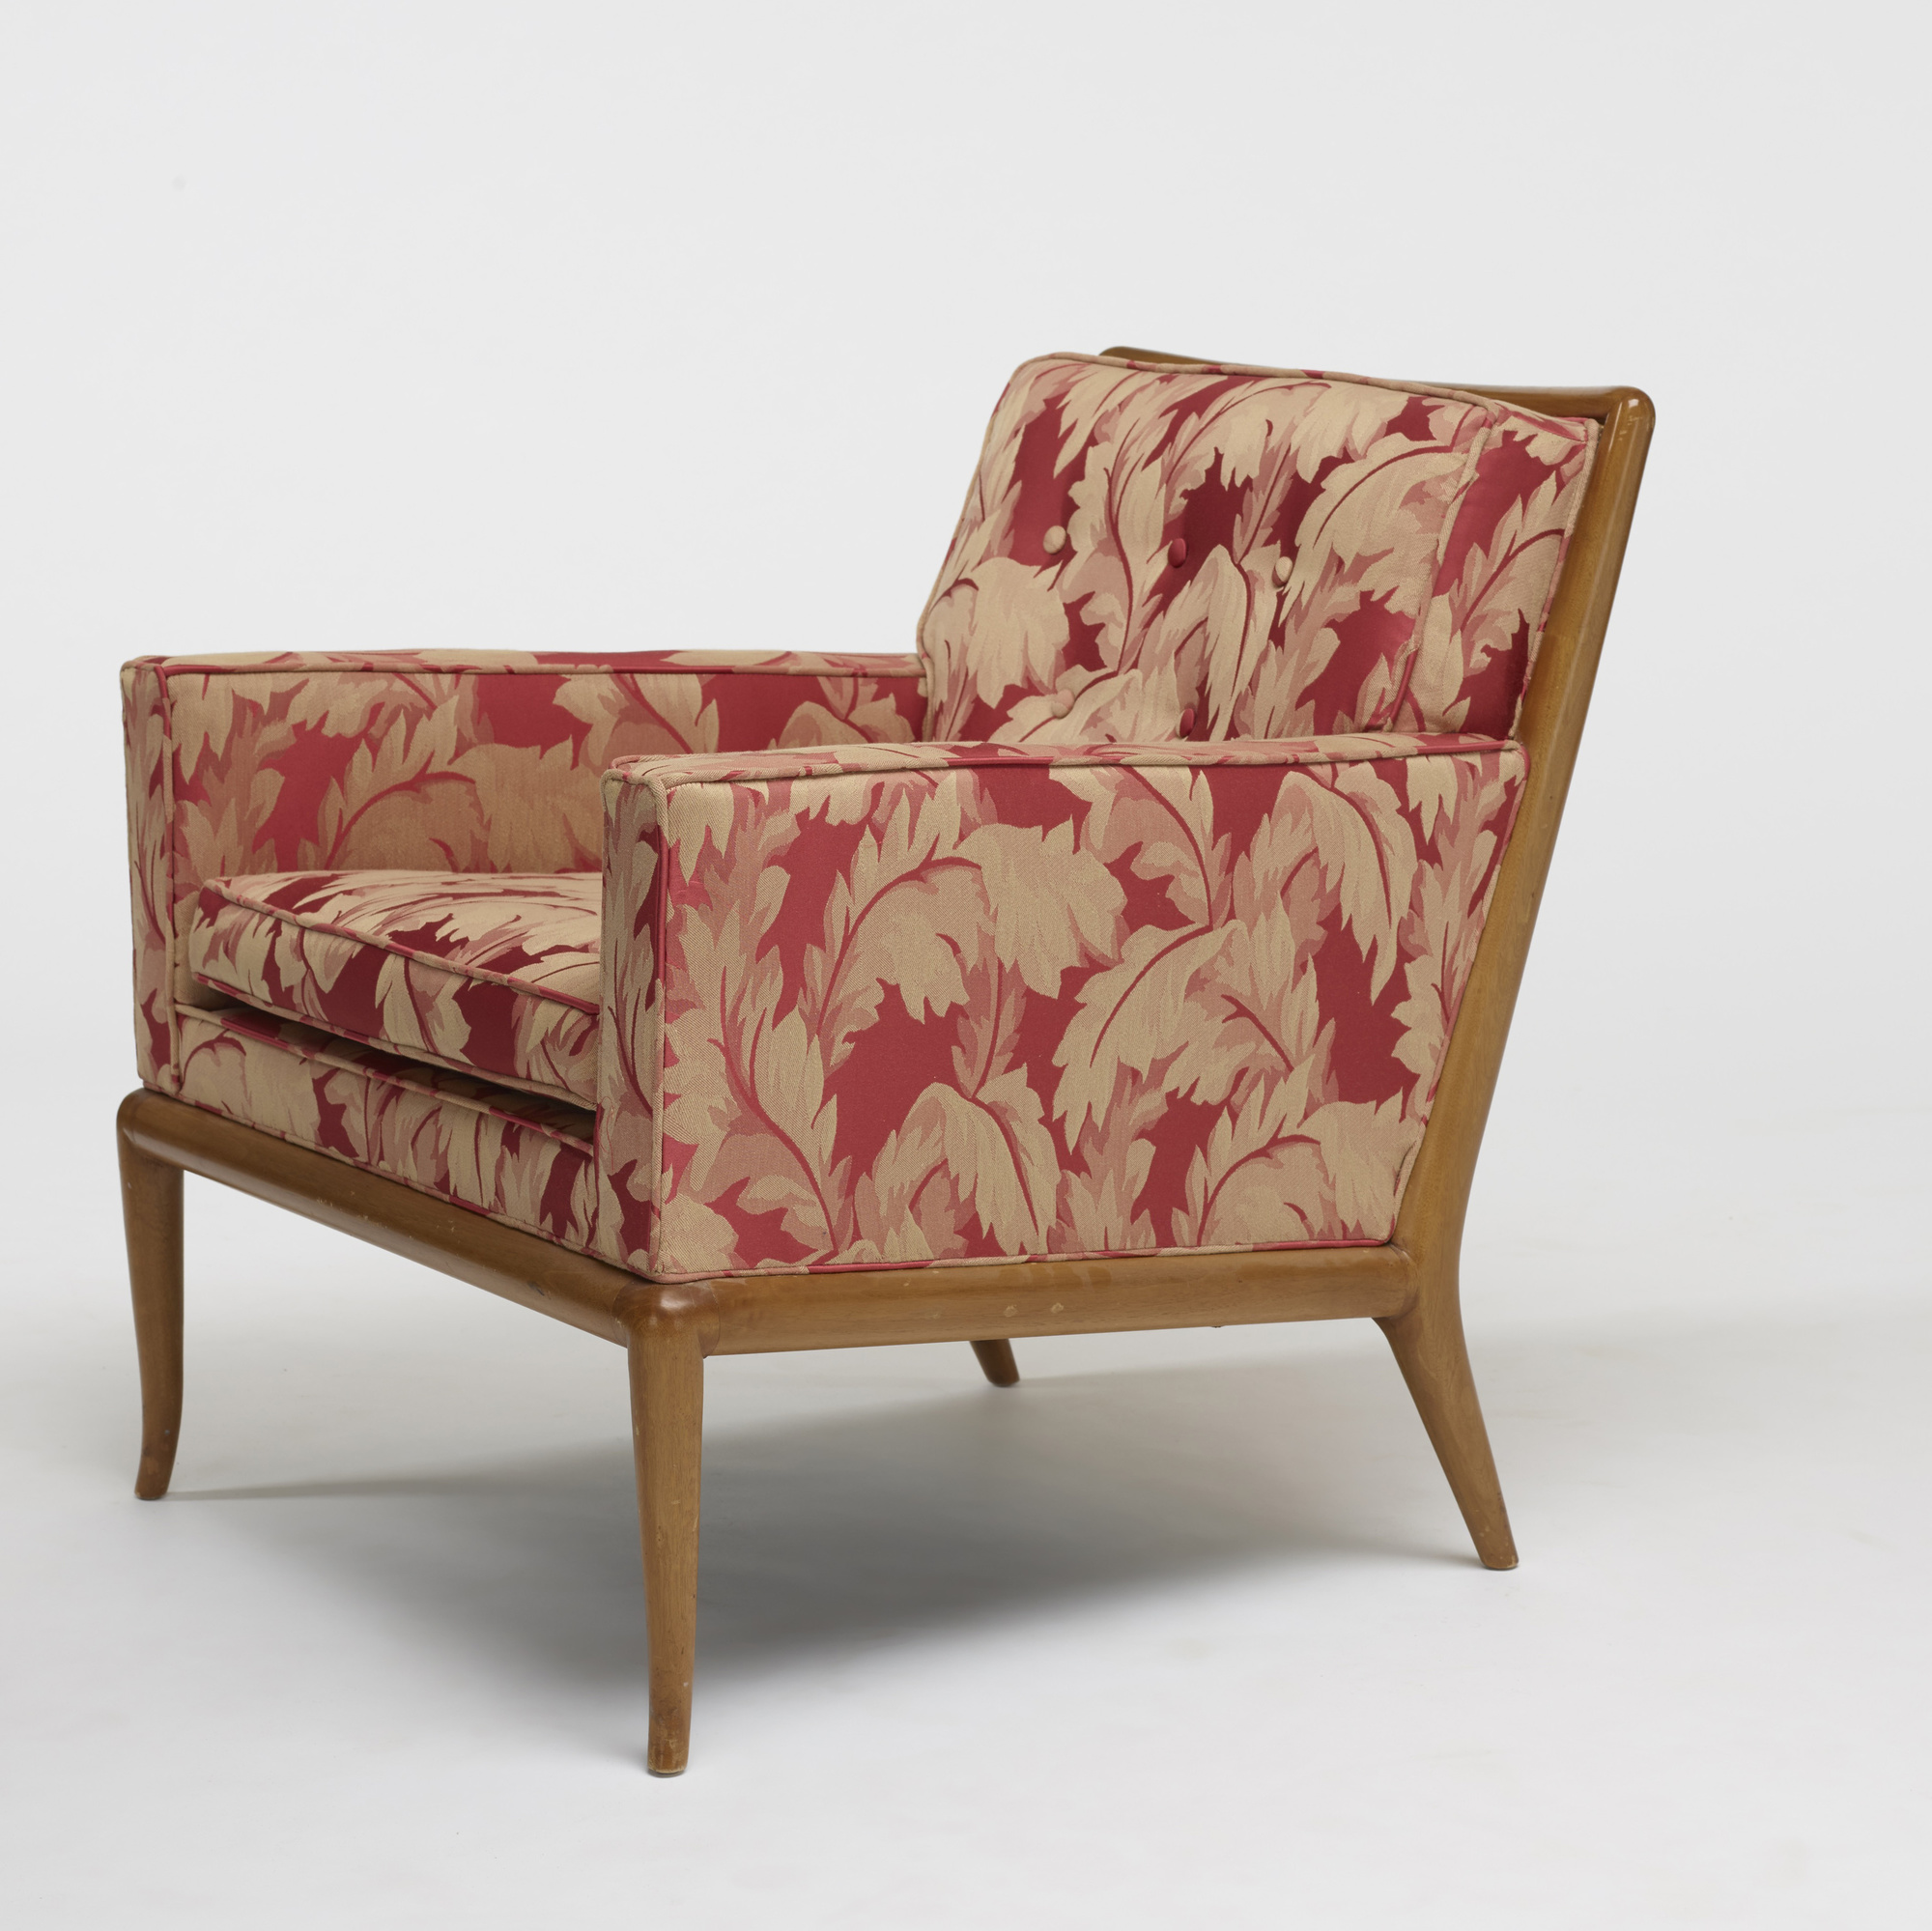 691: T.H. Robsjohn-Gibbings / lounge chairs model WMP, pair (3 of 3)